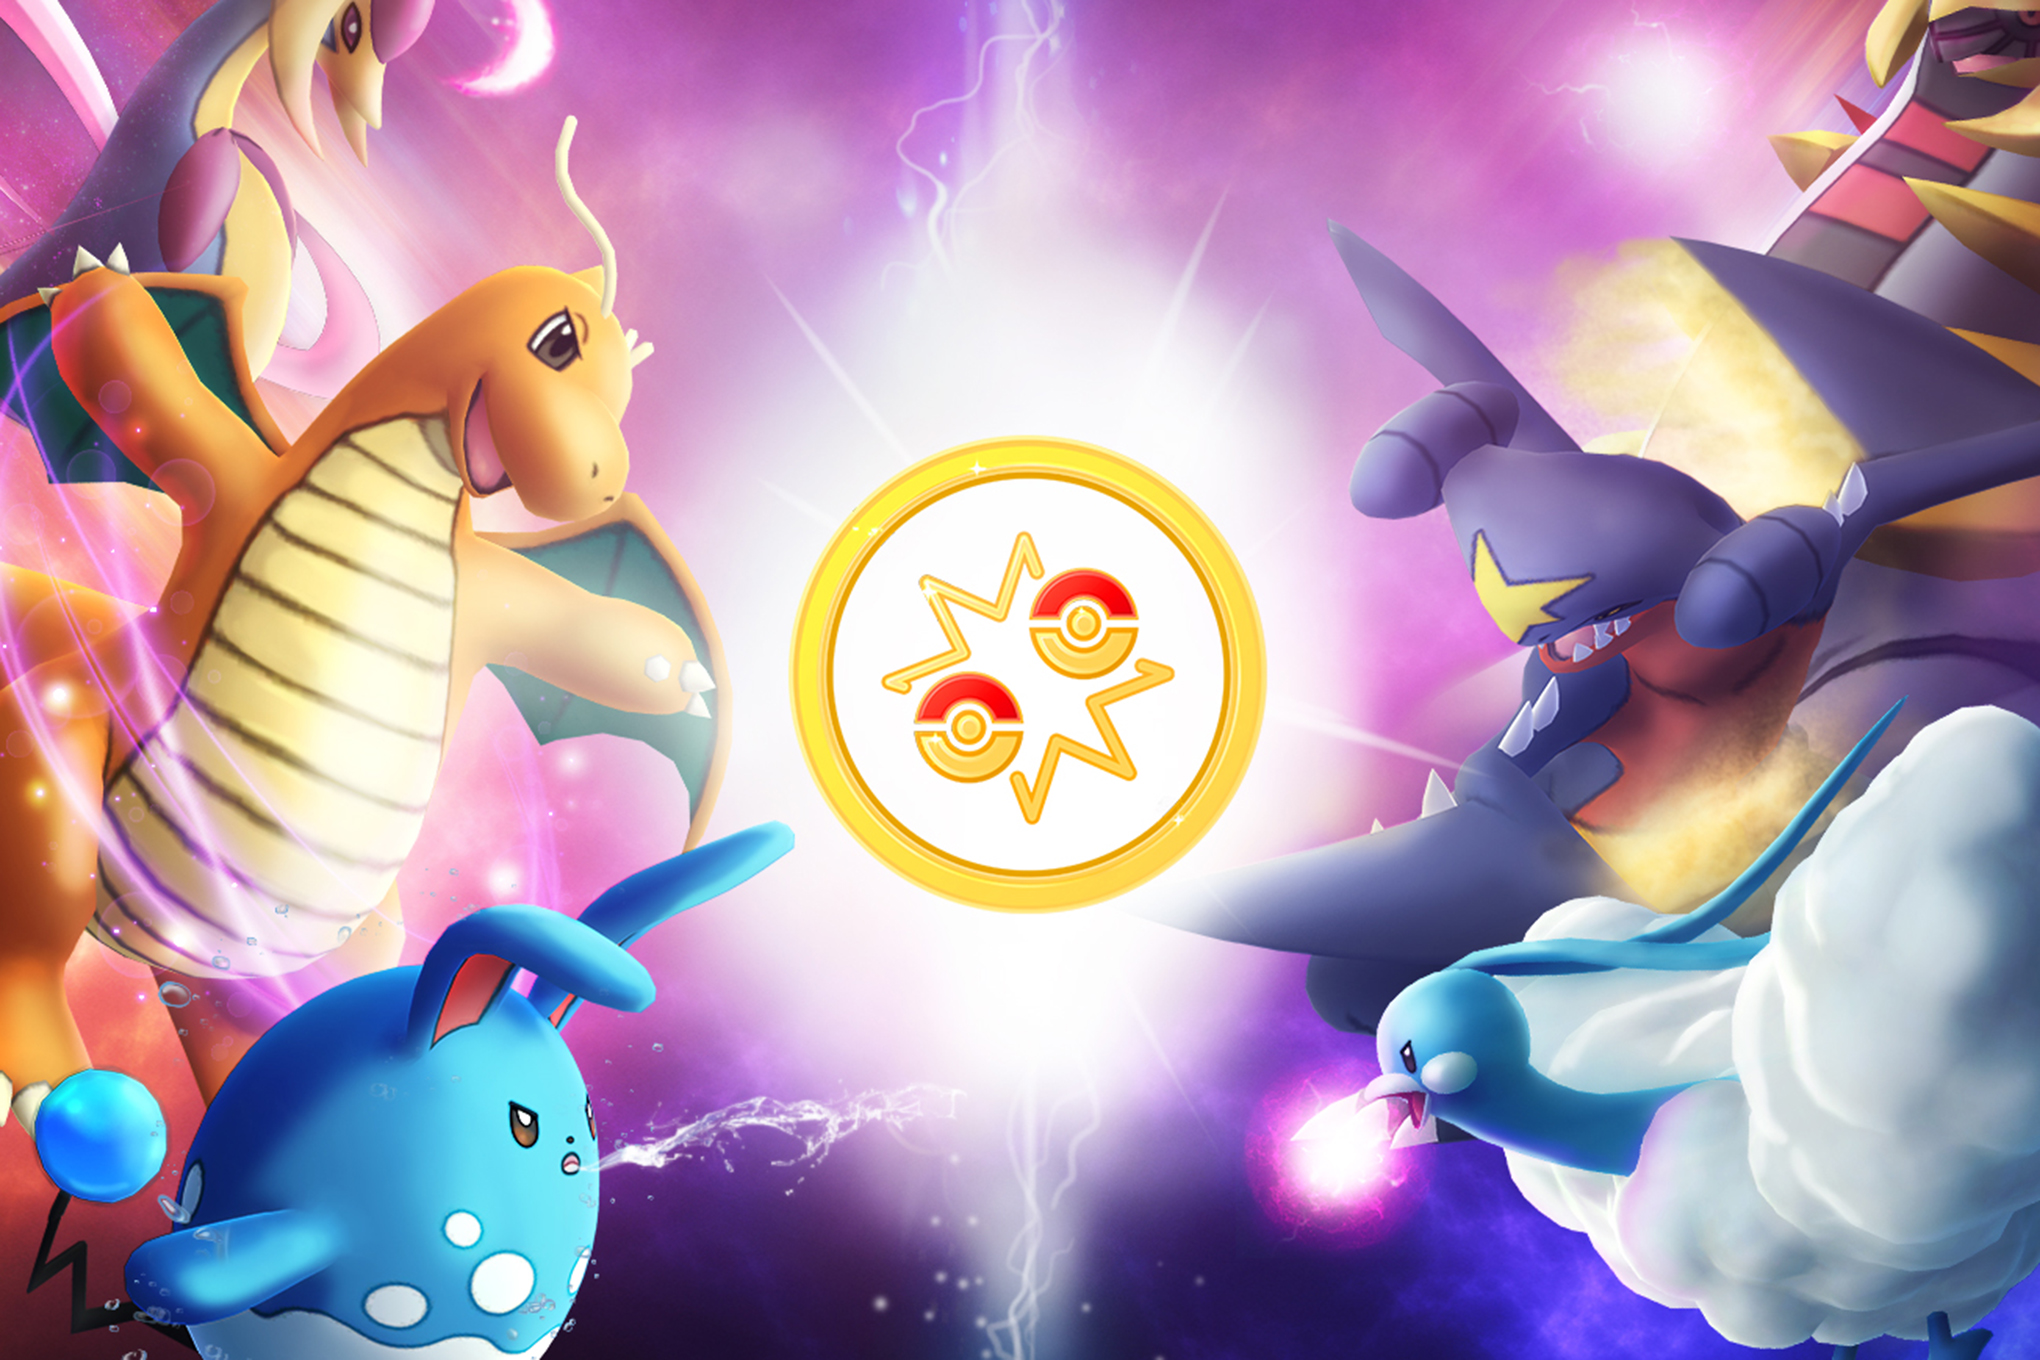 Key art for Pokemon Go Battle League shows several fully grown critters leaping into the fray from opposite sides of the frame.